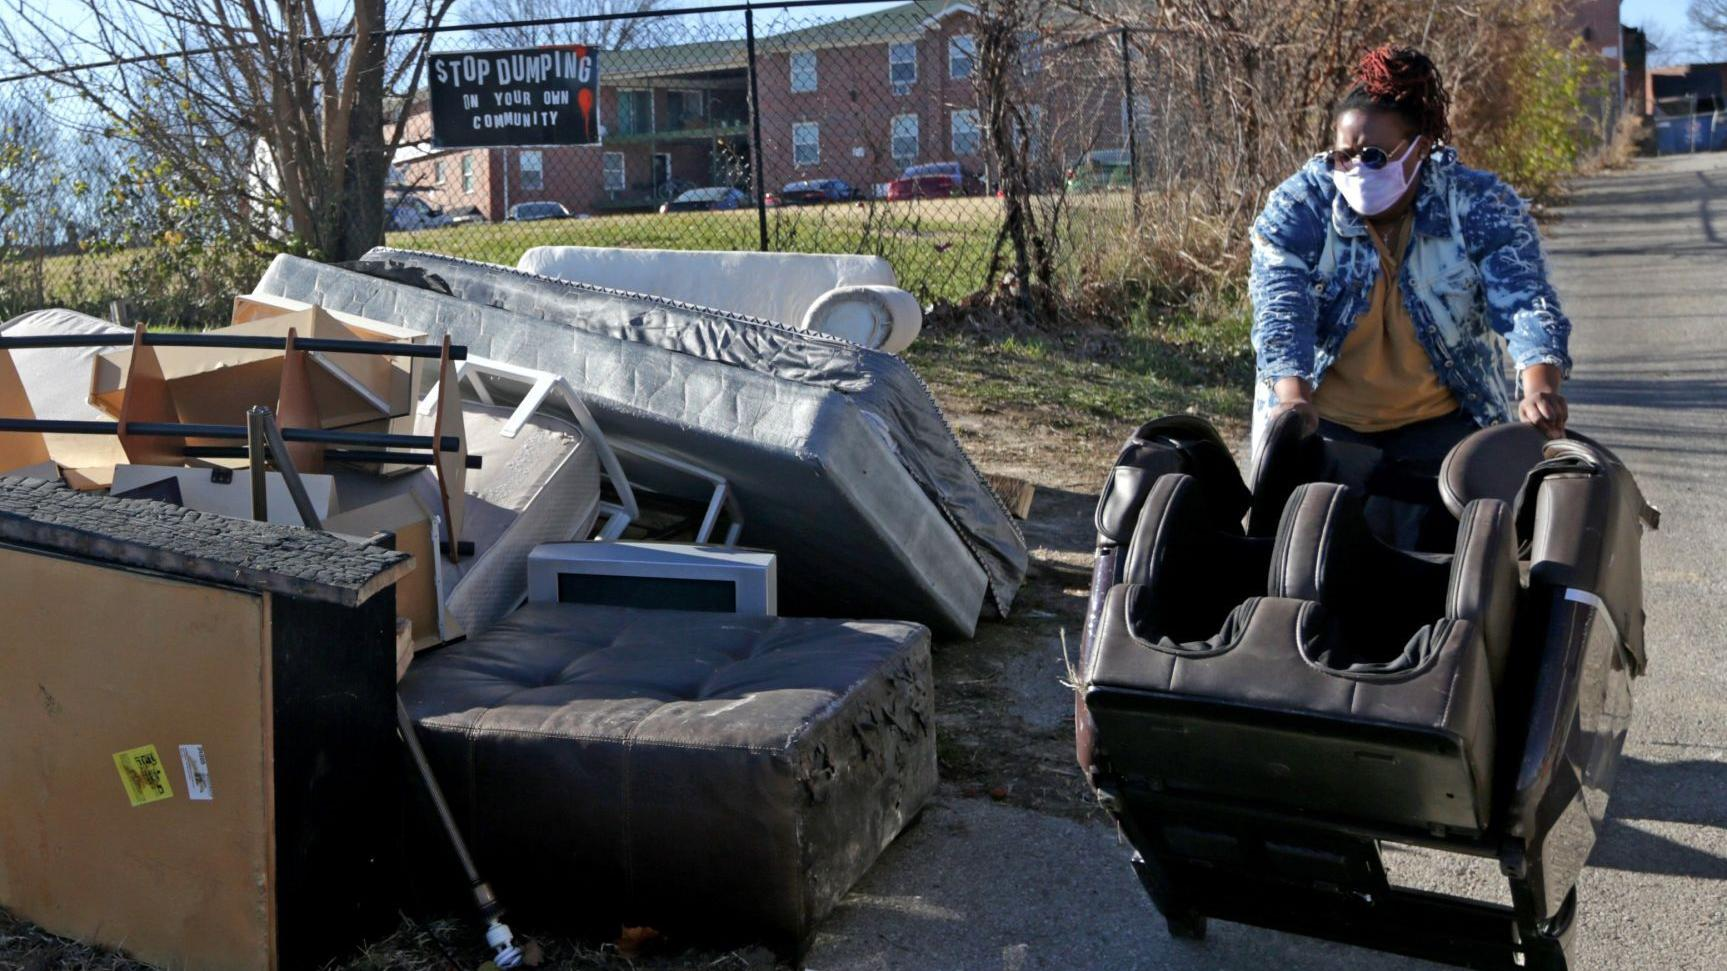 Trash complaints grow in St. Louis. 'You have to make people know it's not OK.'